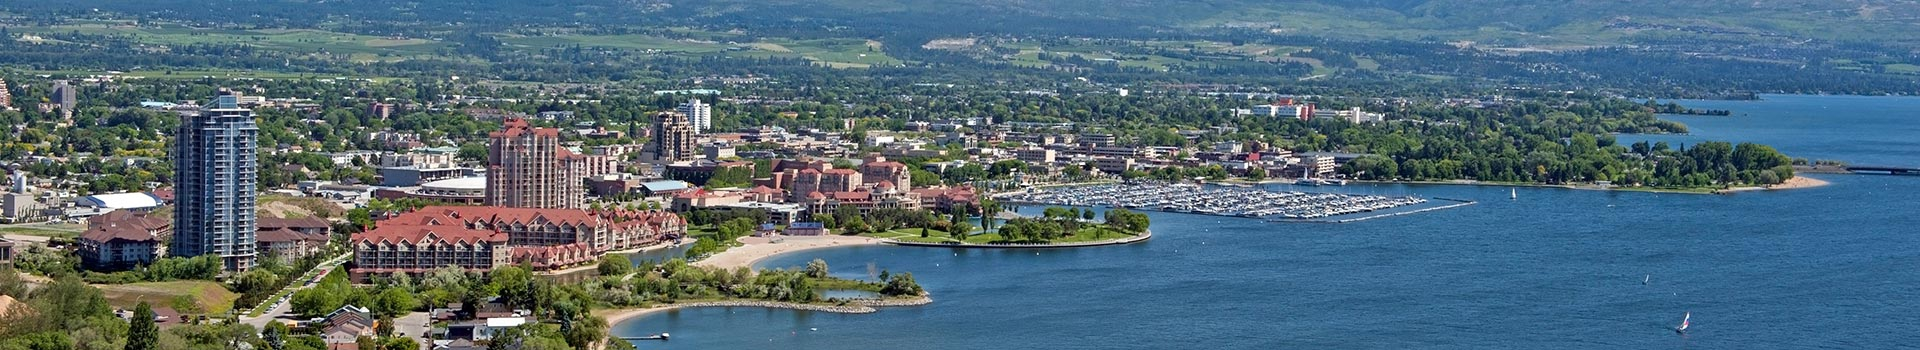 Aerial view of downtown Kelowna